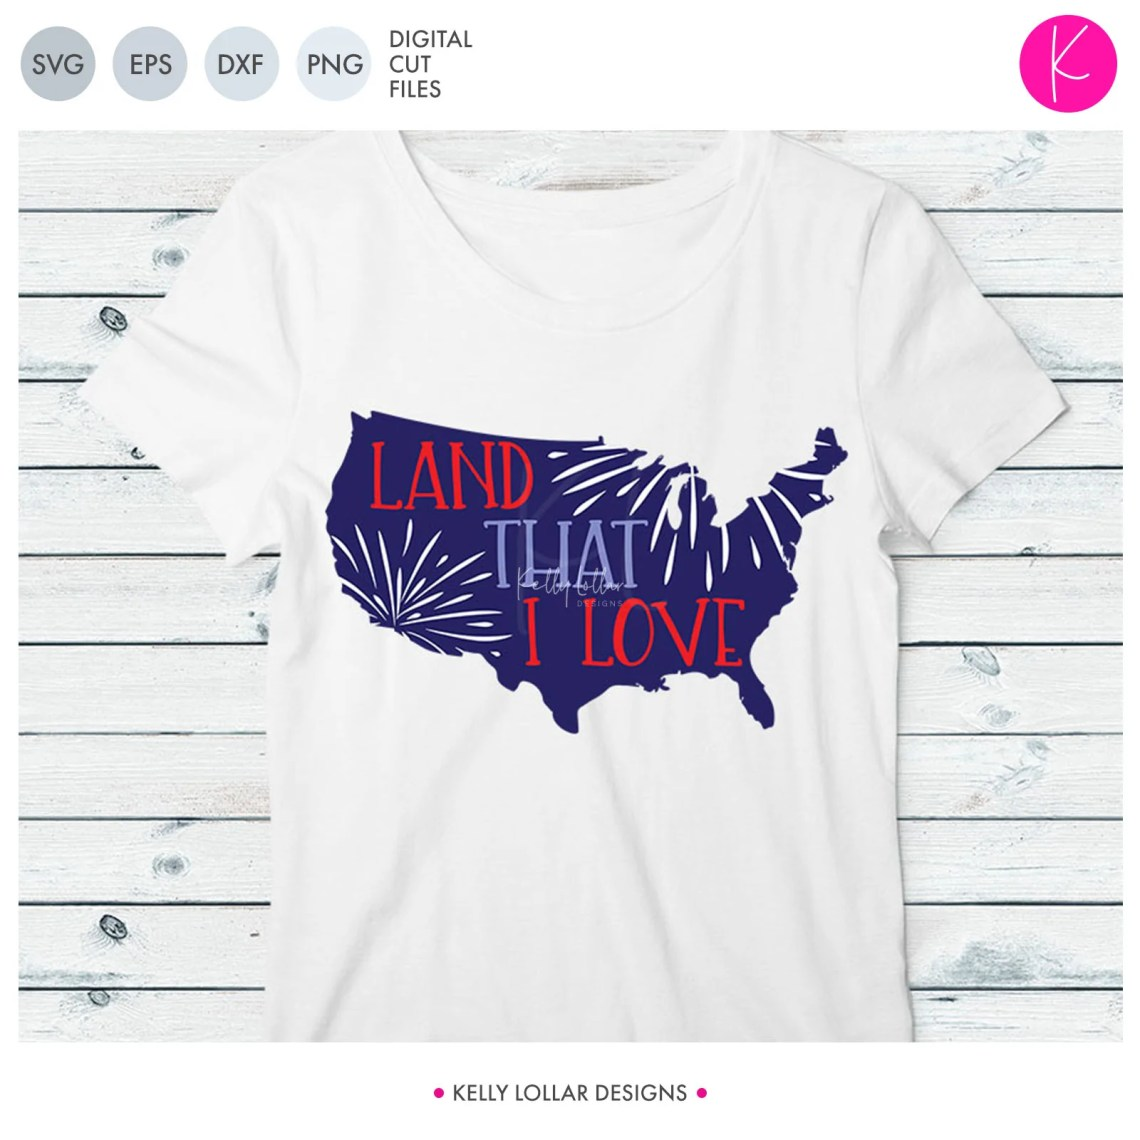 Download Land That I Love United States SVG Cut File | Kelly Lollar ...